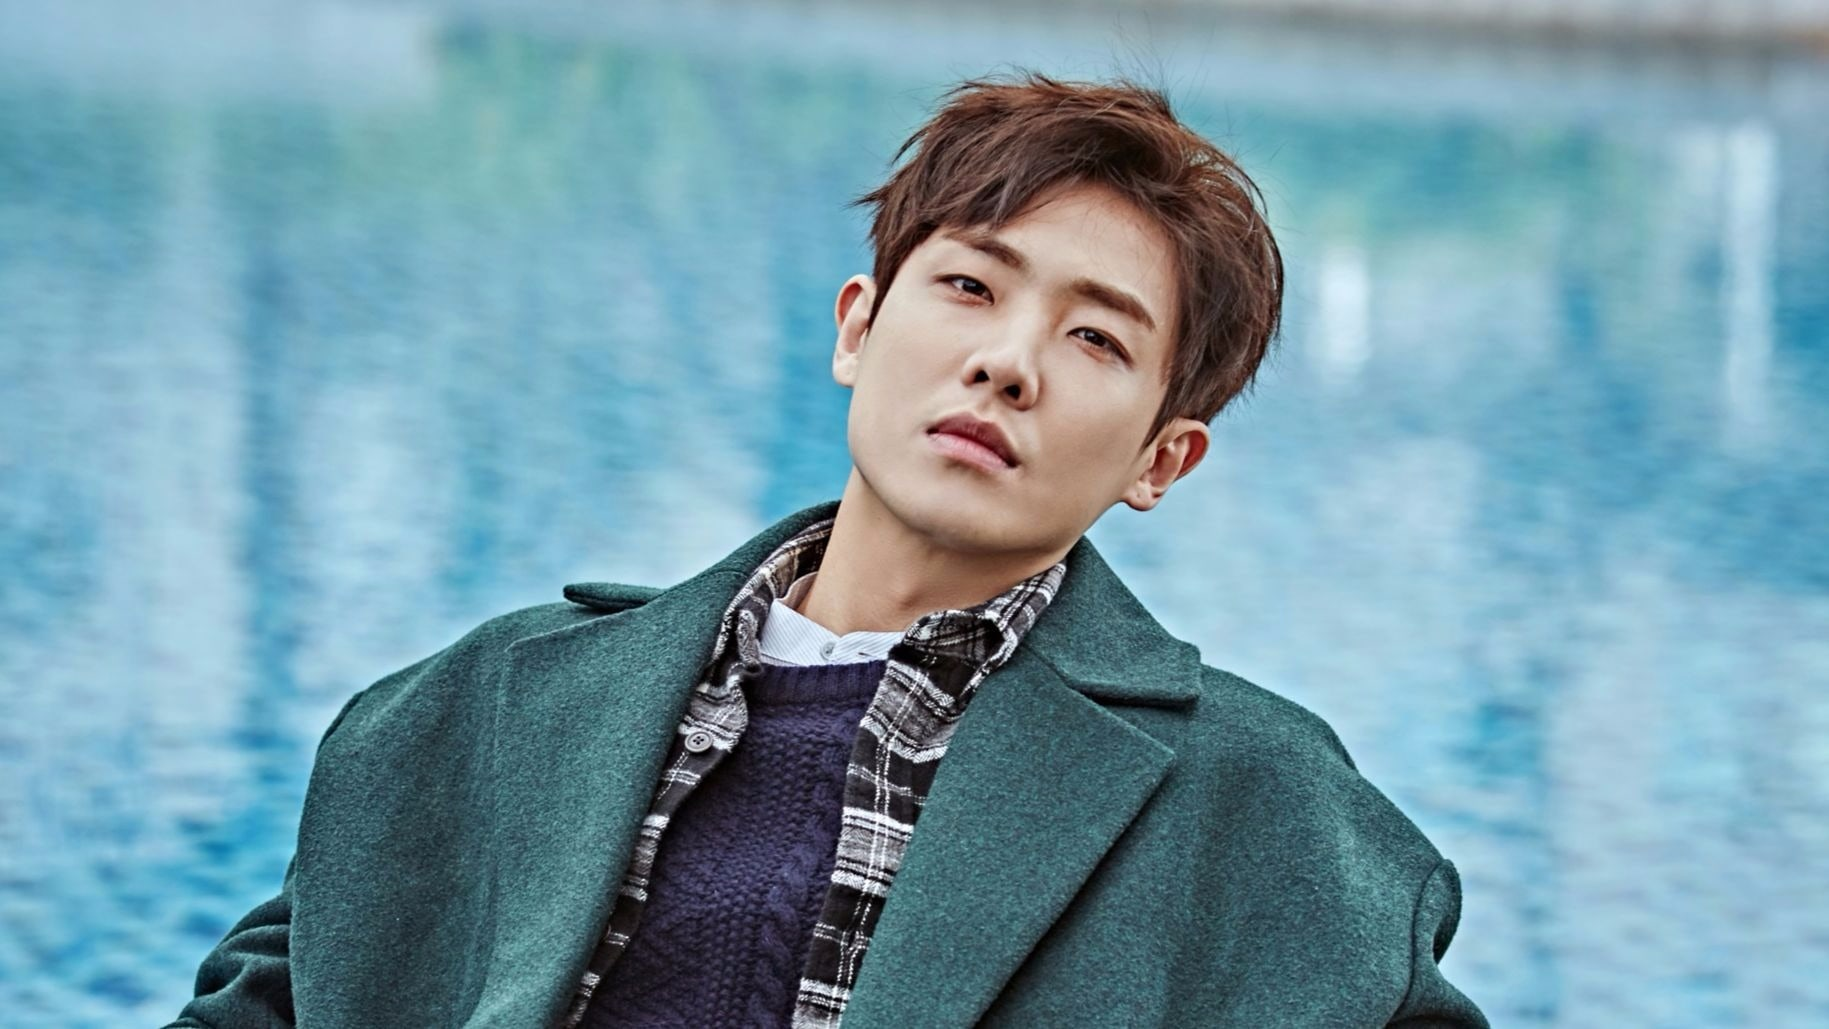 Lee Joon Shares That He Is Open To Pursuing Other Career Paths After Completing Military Service